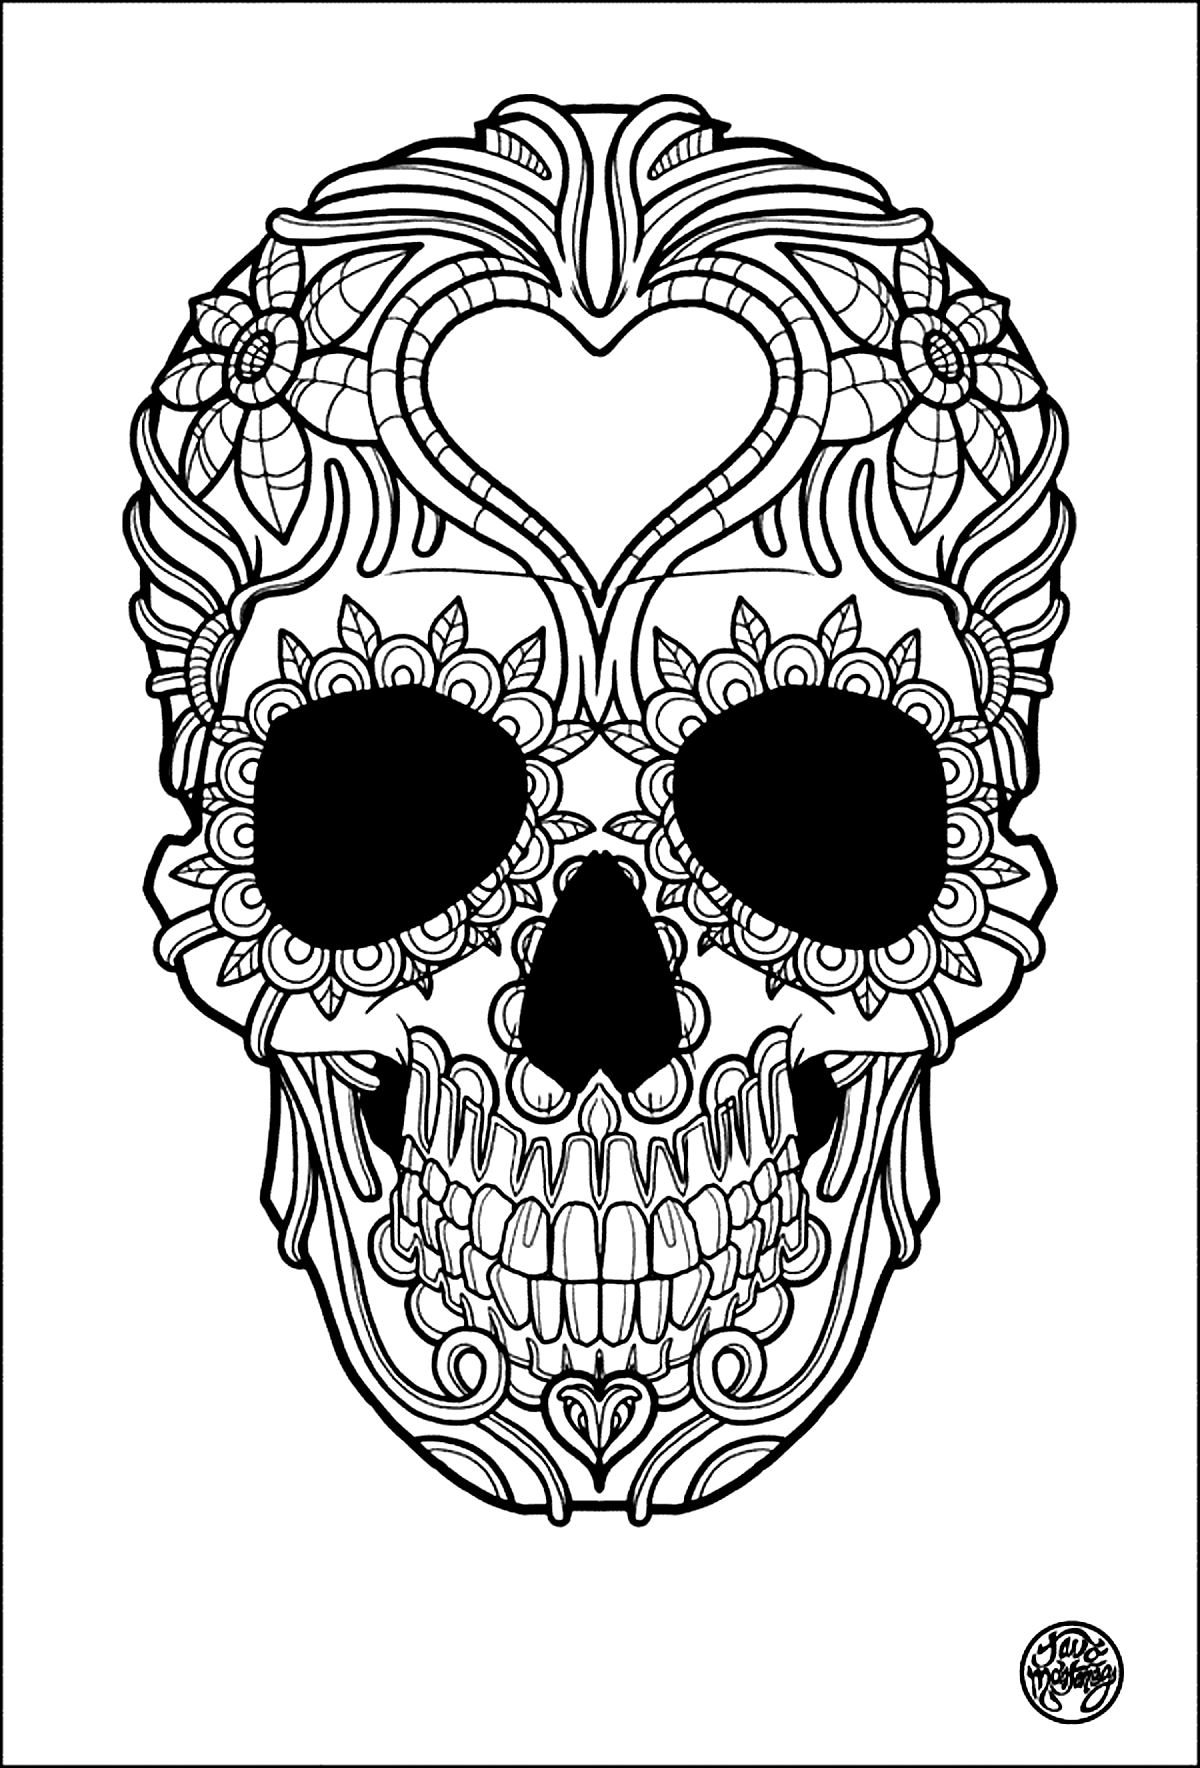 tattoo coloring pages printable tattoo coloring pages coloring pages to download and print pages tattoo printable coloring